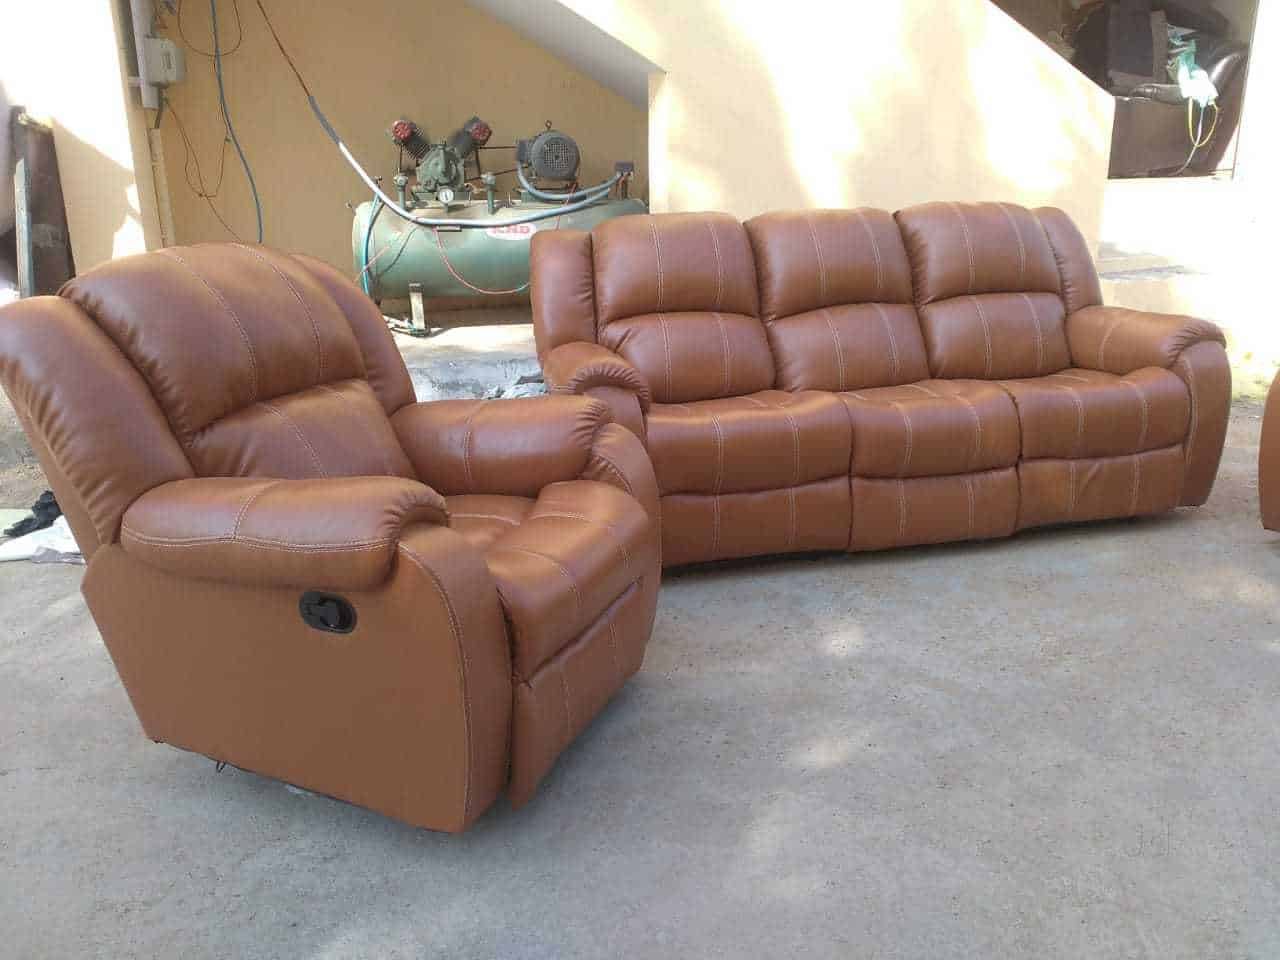 Recliner Sofa Repair Chennai K R Sofa Service Jalladianpet Sofa Repair Services In Chennai